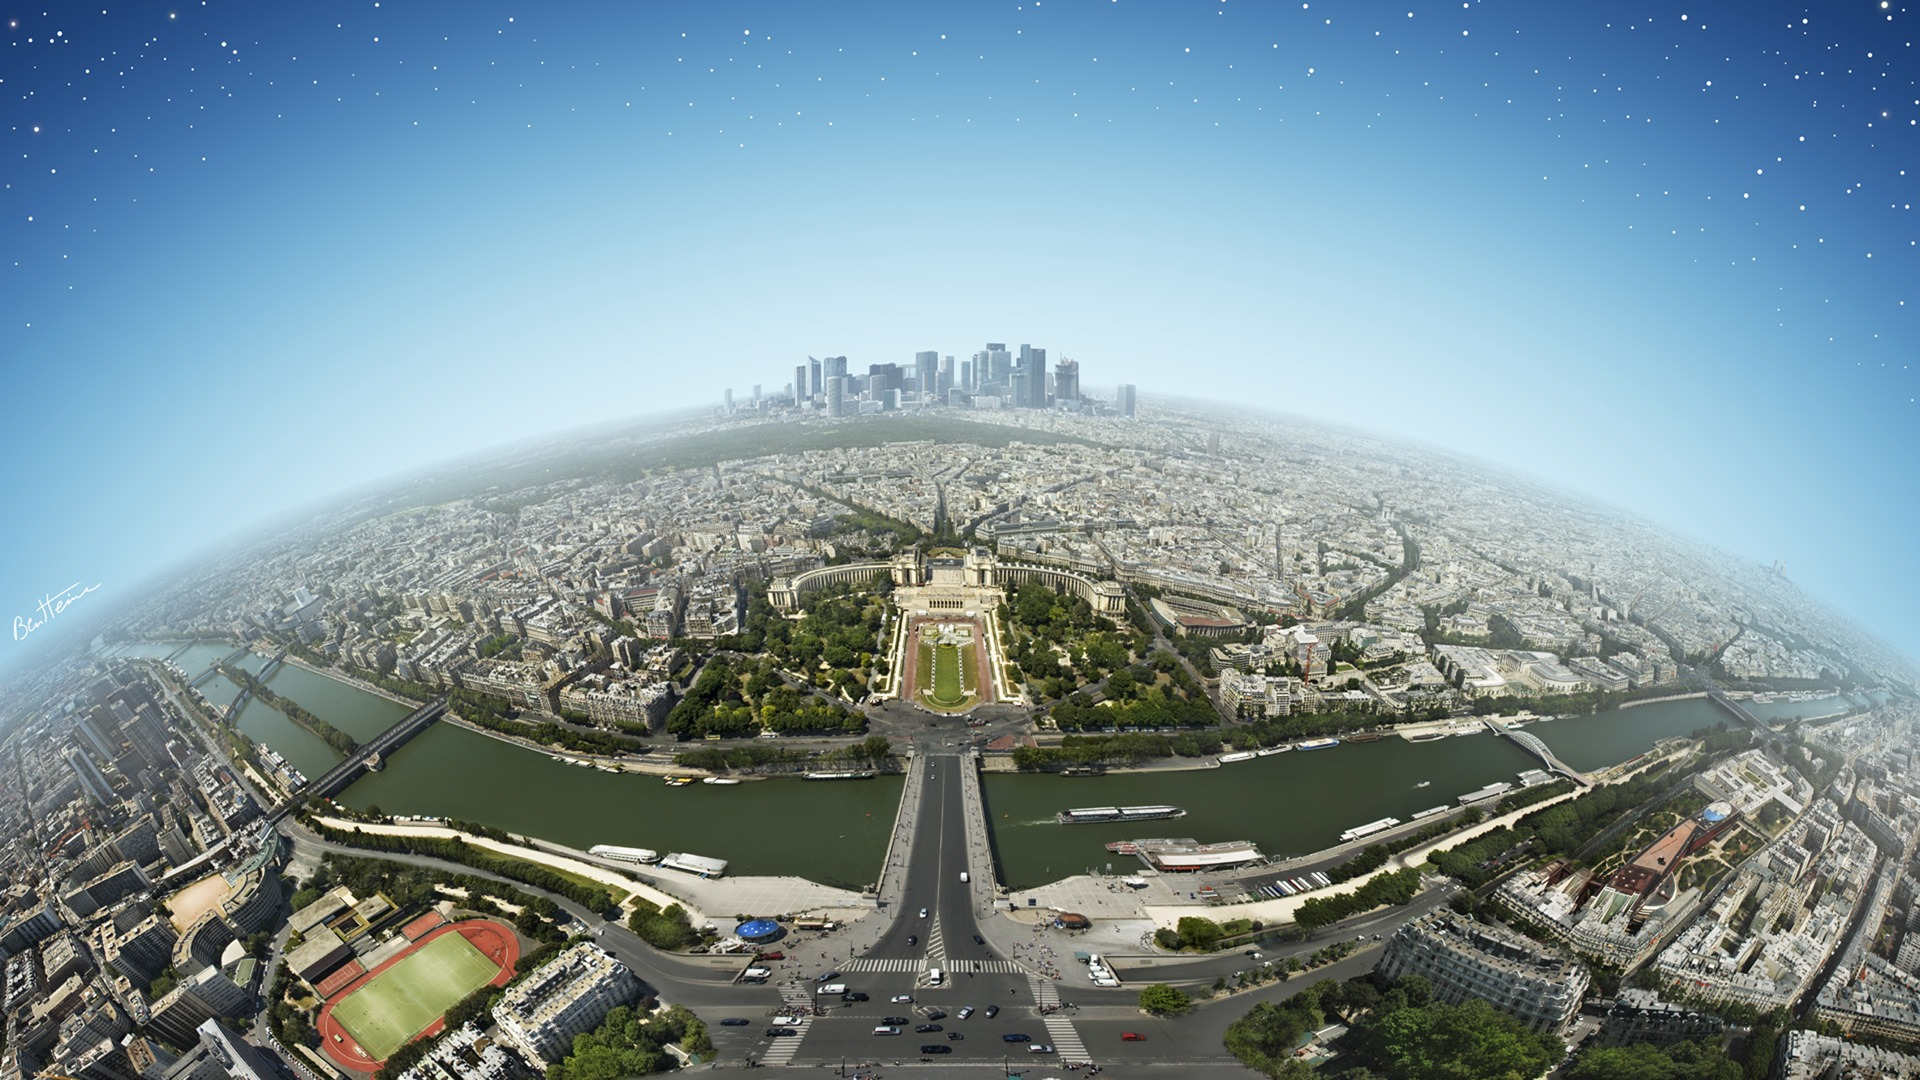 144 Cities \/ France HD Wallpapers  Background Images  Wallpaper Abyss